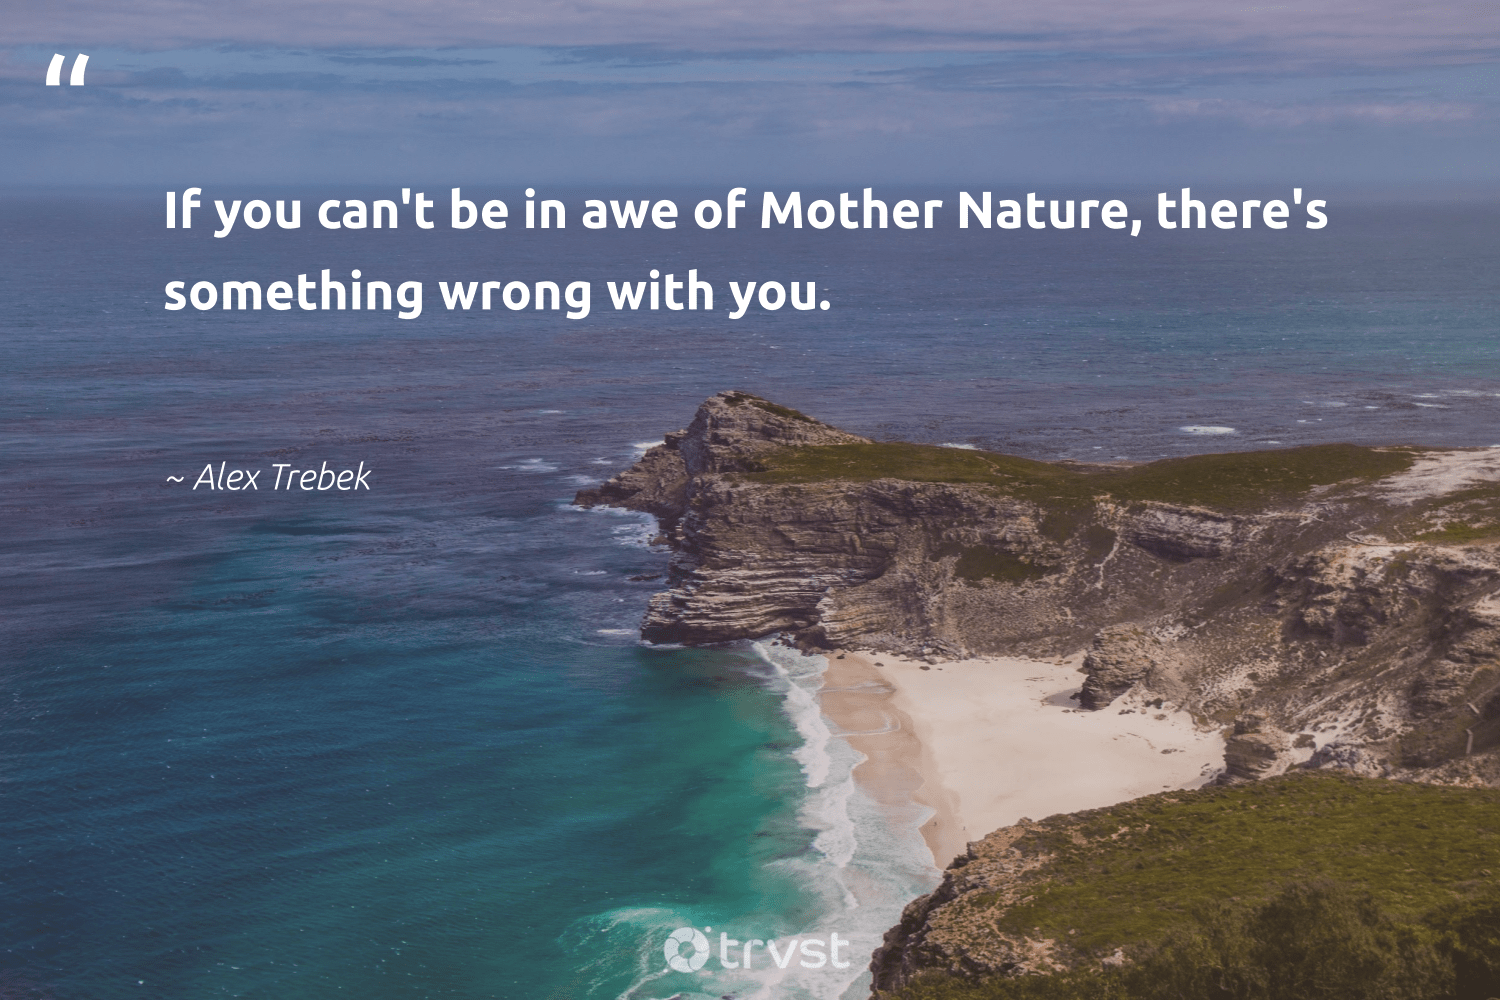 """""""If you can't be in awe of Mother Nature, there's something wrong with you.""""  - Alex Trebek #trvst #quotes #environment #nature #mothernature #conservation #wildernessnation #gogreen #planetearthfirst #planet #earth #climatechange"""